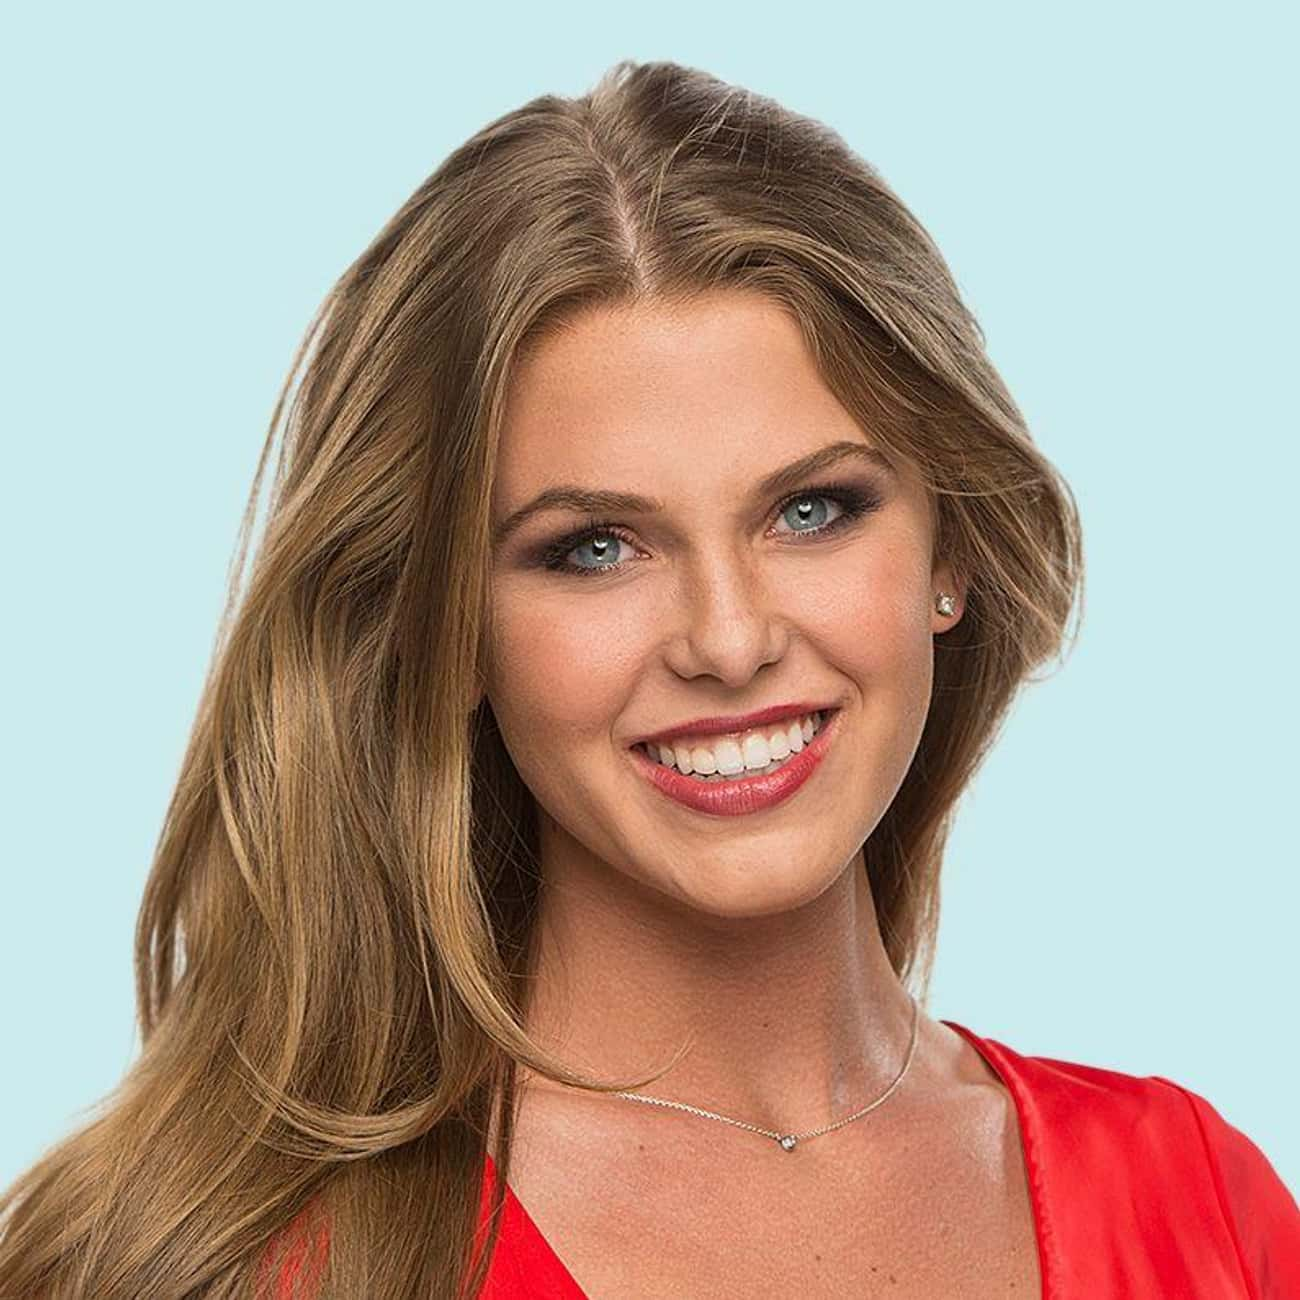 Haleigh Broucher is listed (or ranked) 4 on the list The Ladies of Big Brother America Seasons 11-20 Ranked